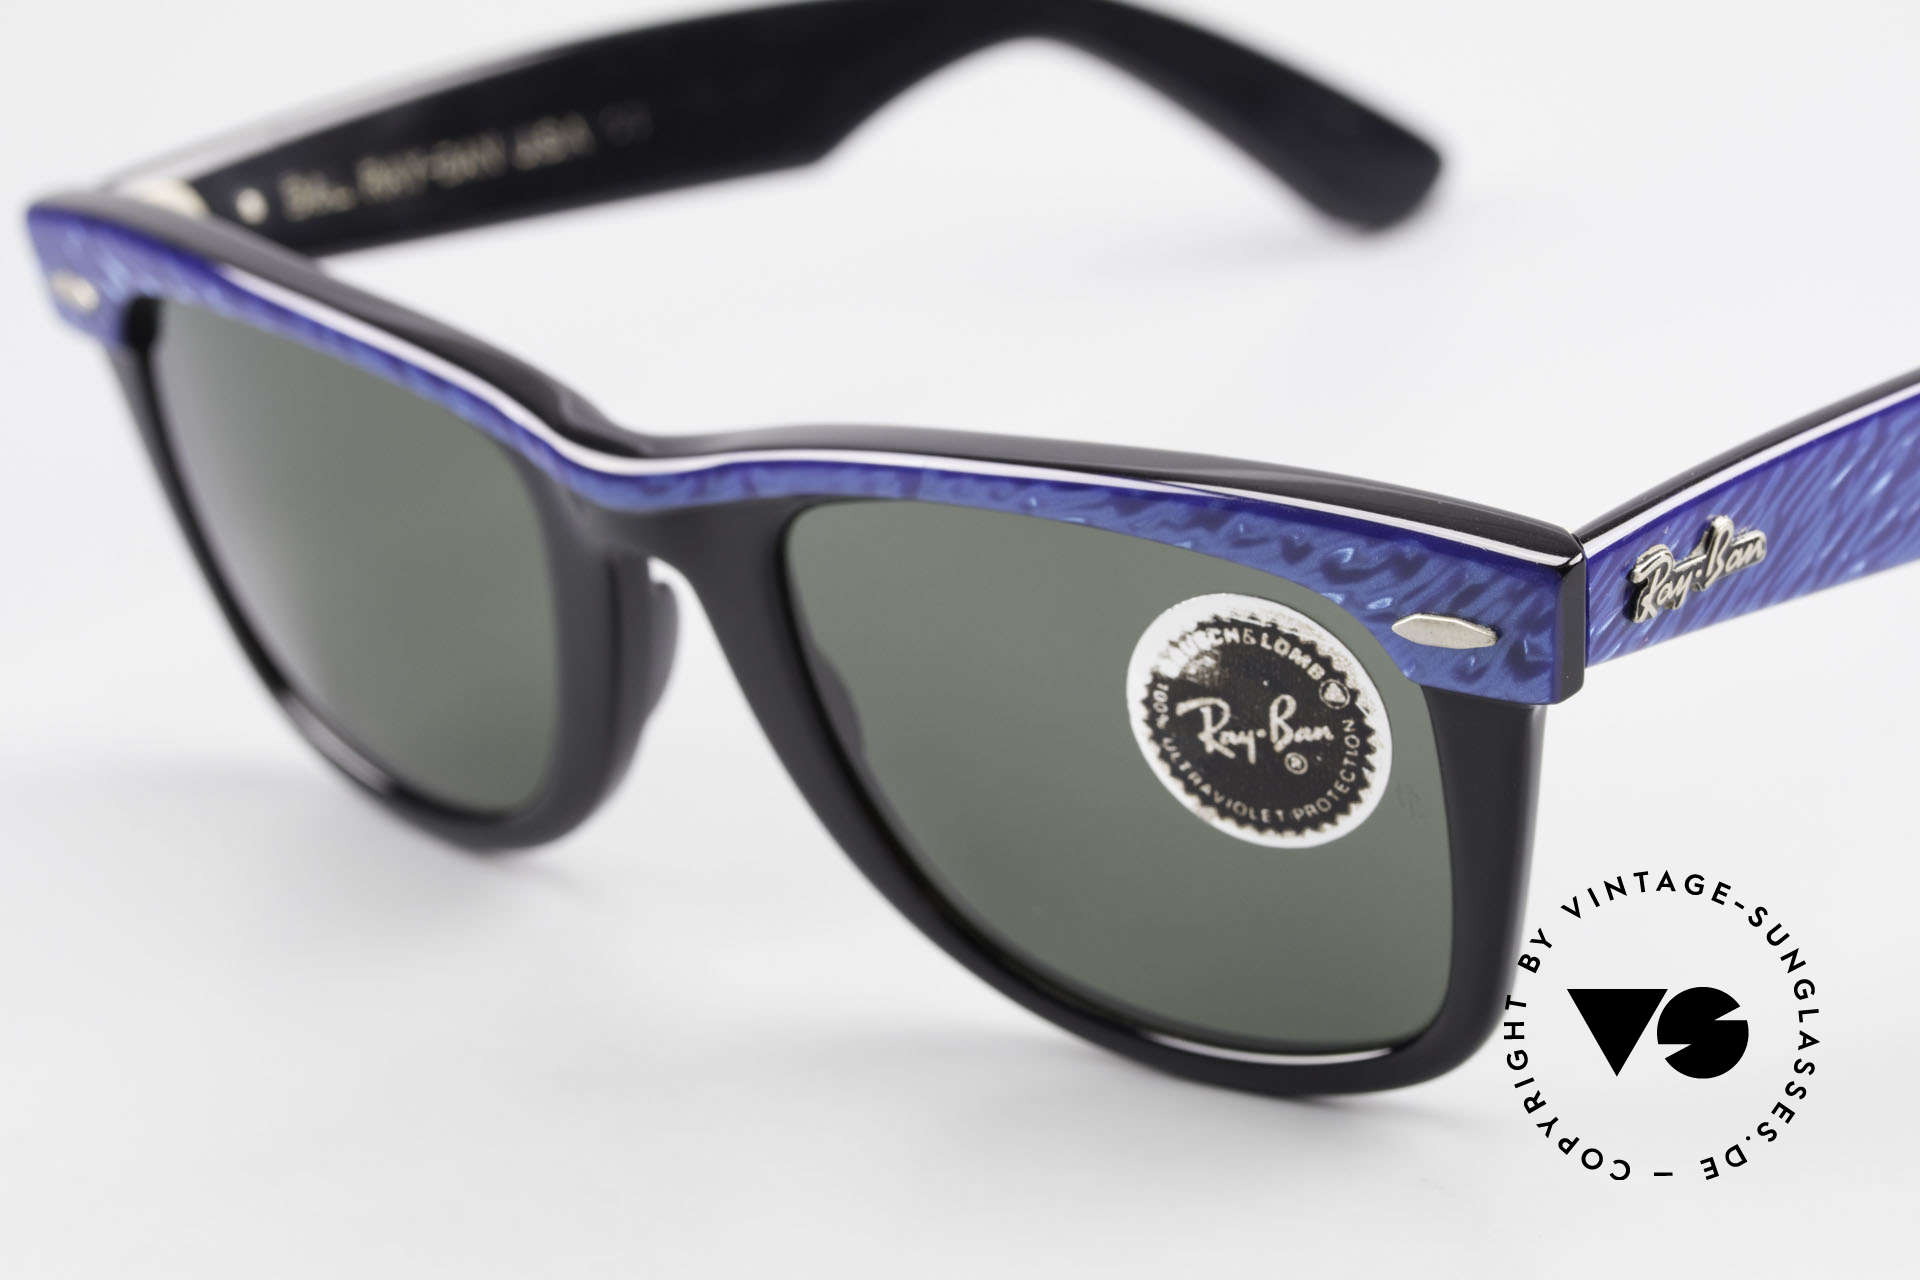 Ray Ban Wayfarer I Old 80's Bausch Lomb Ray-Ban, unworn rarity, NOS (meanwhile, a collector's item), Made for Men and Women